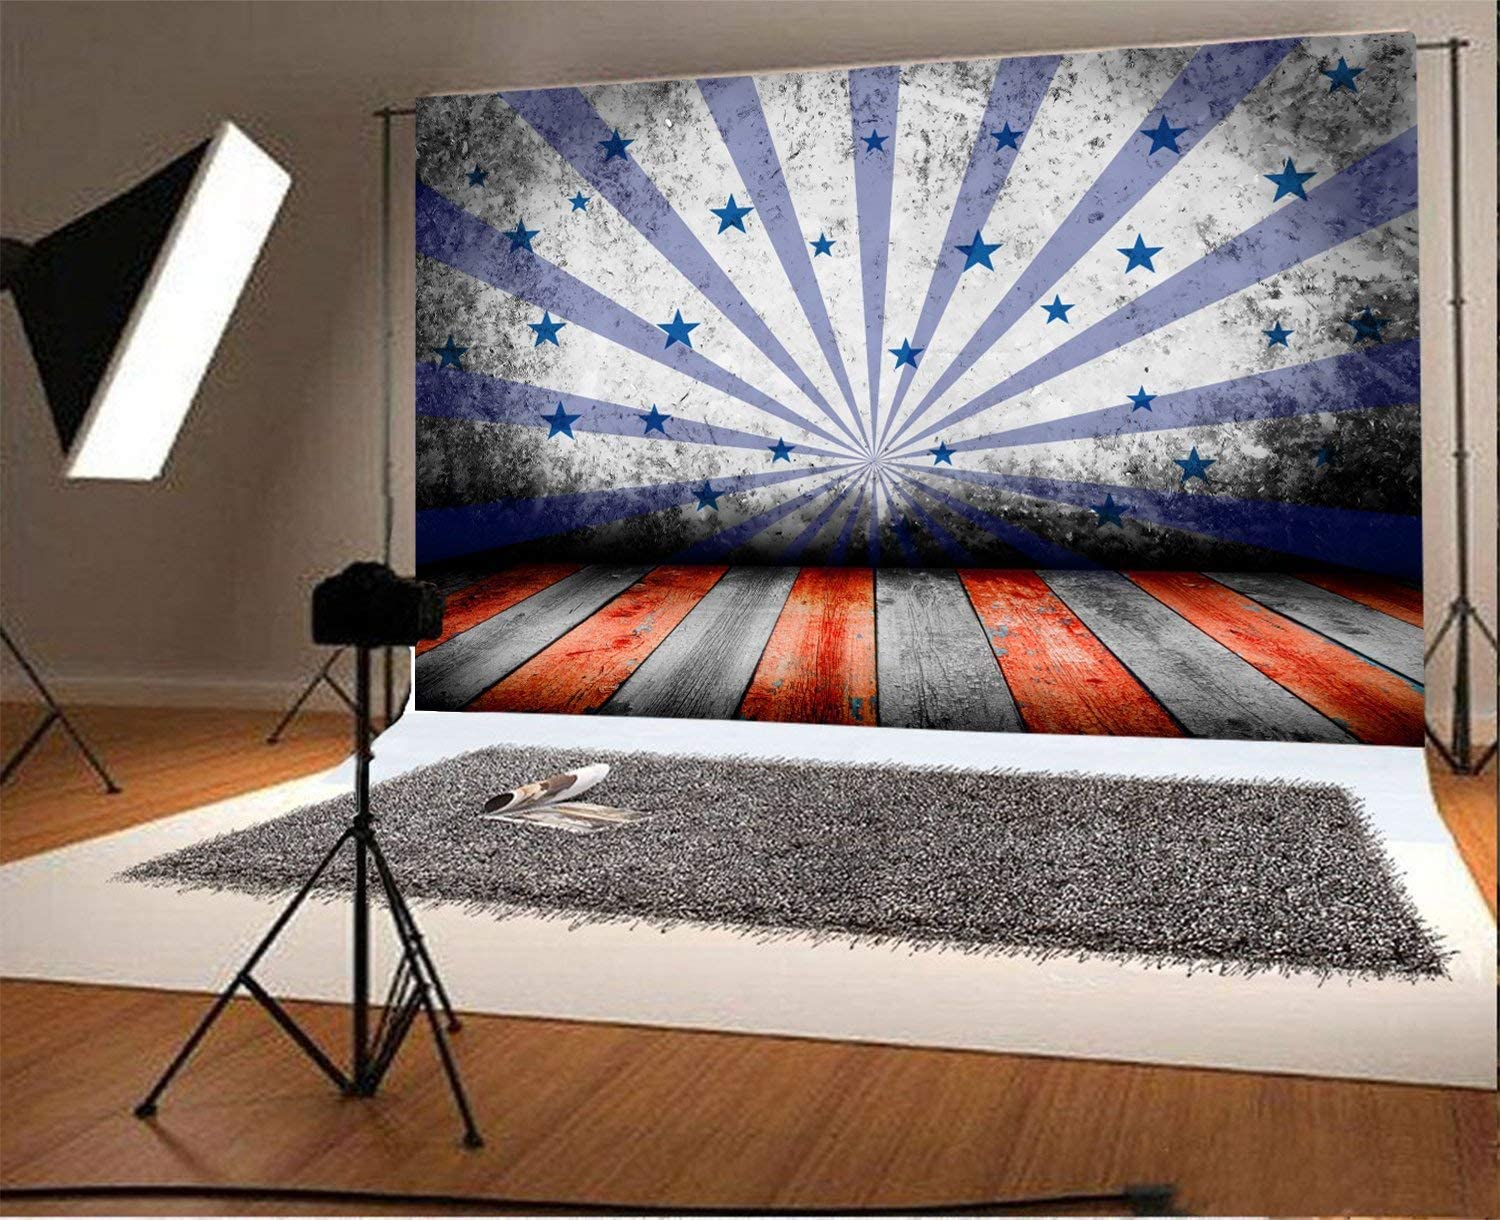 7x5ft Vinyl Photography Backdrop USA Style Background Star Wall and Color Stripe Wood Floor Scene Photo Background Children Baby Adults Portraits Backdrop